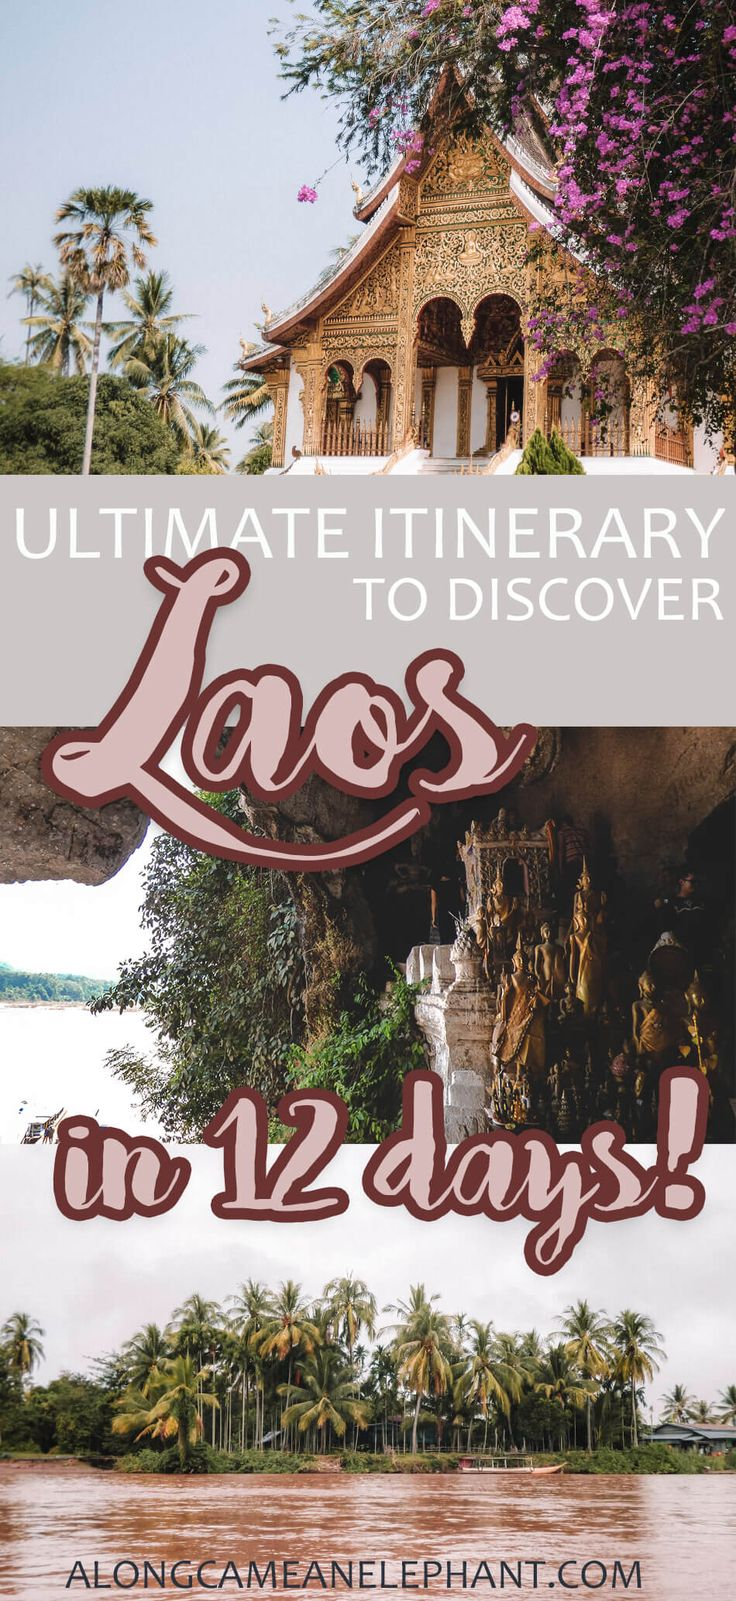 A 12-day travel itinerary for Laos, covering all the best places to go in Laos - Luang Prabang, Vang Vieng, and more.